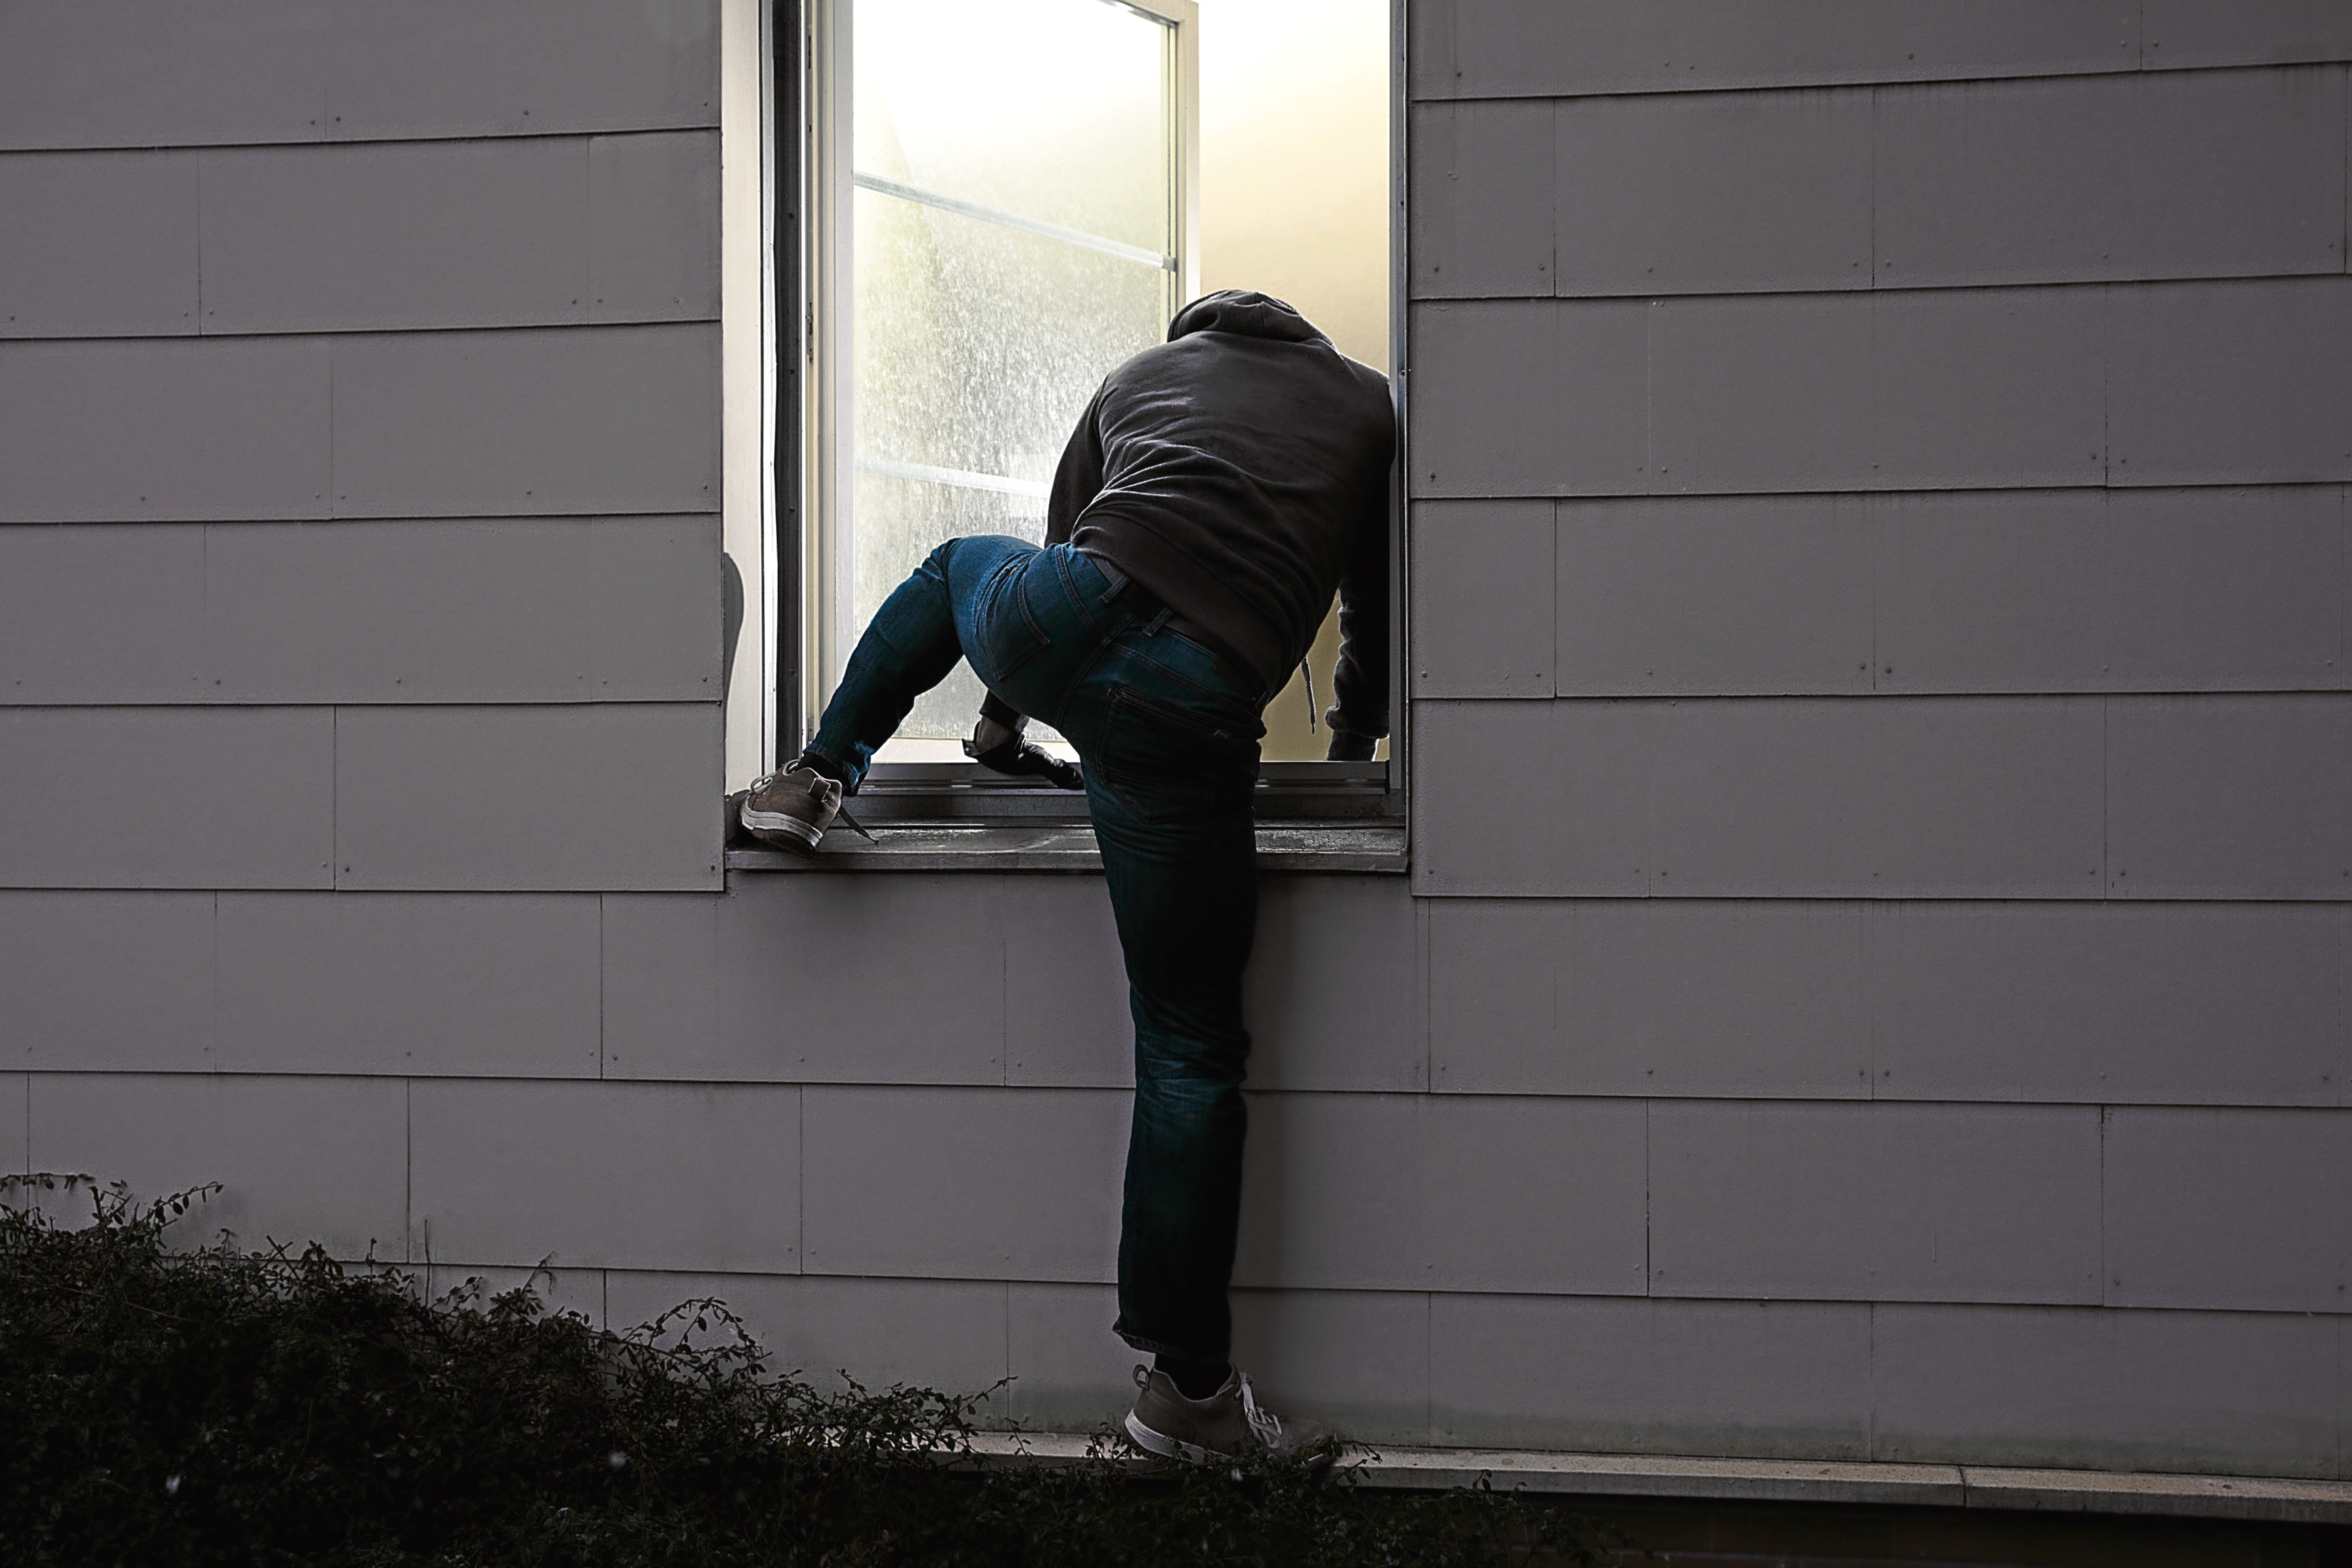 In Aberdeen, 17 teenagers have been reported for housebreaking over the last three years.